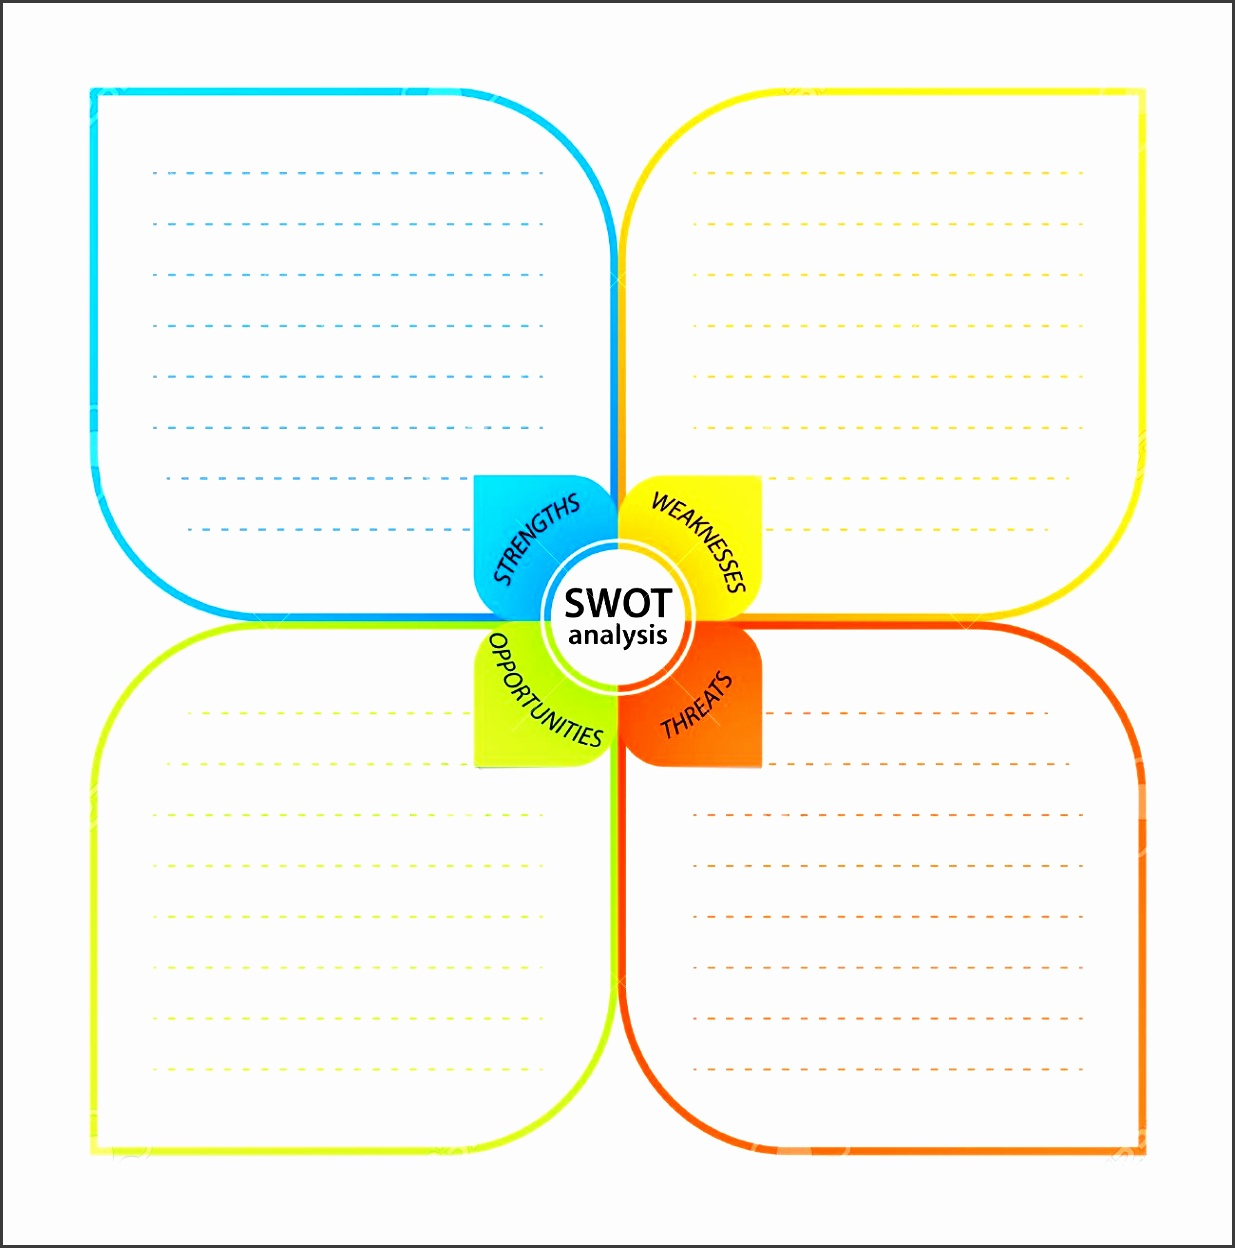 sheet with swot analysis diagram wit space for own strengths weaknesses threats and opportunities